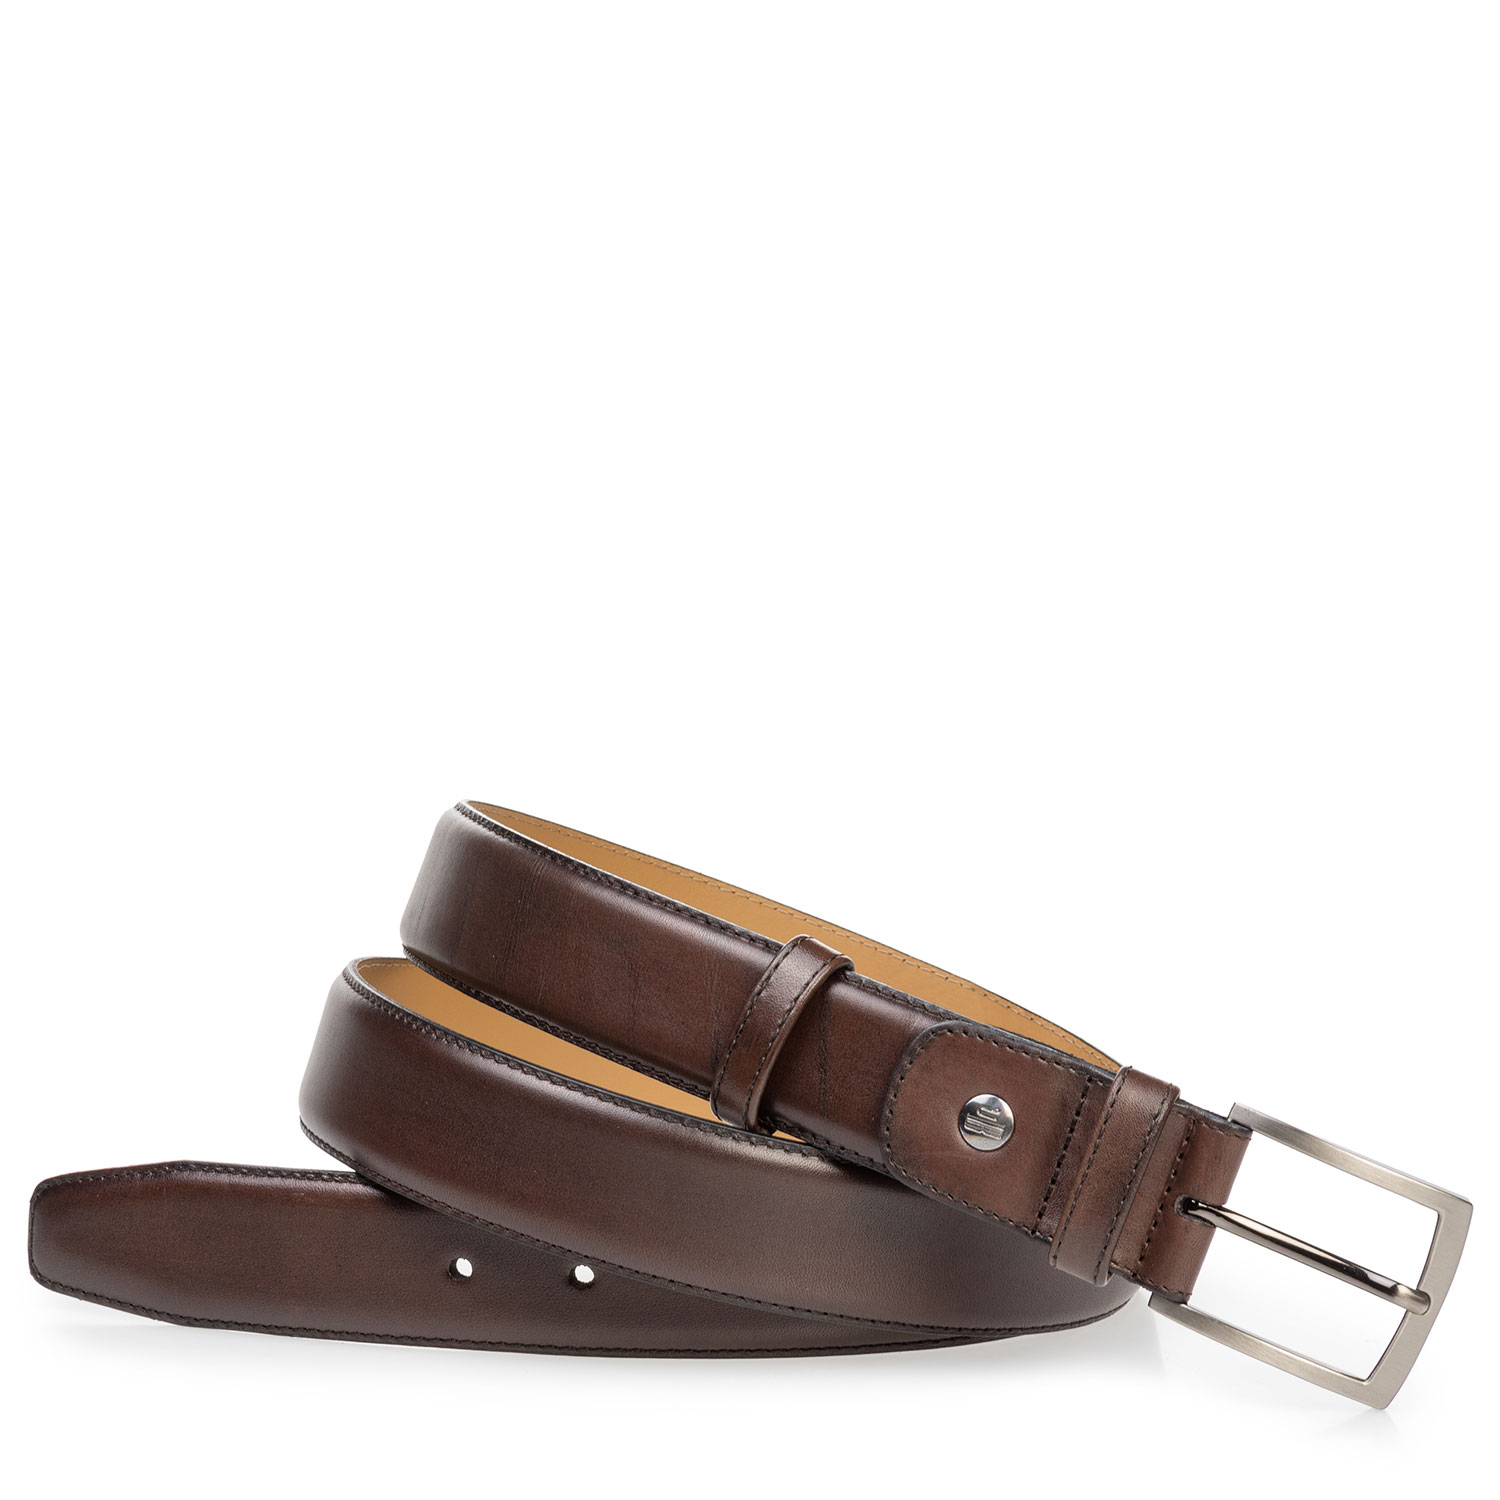 75529/00 - Calf leather belt dark brown